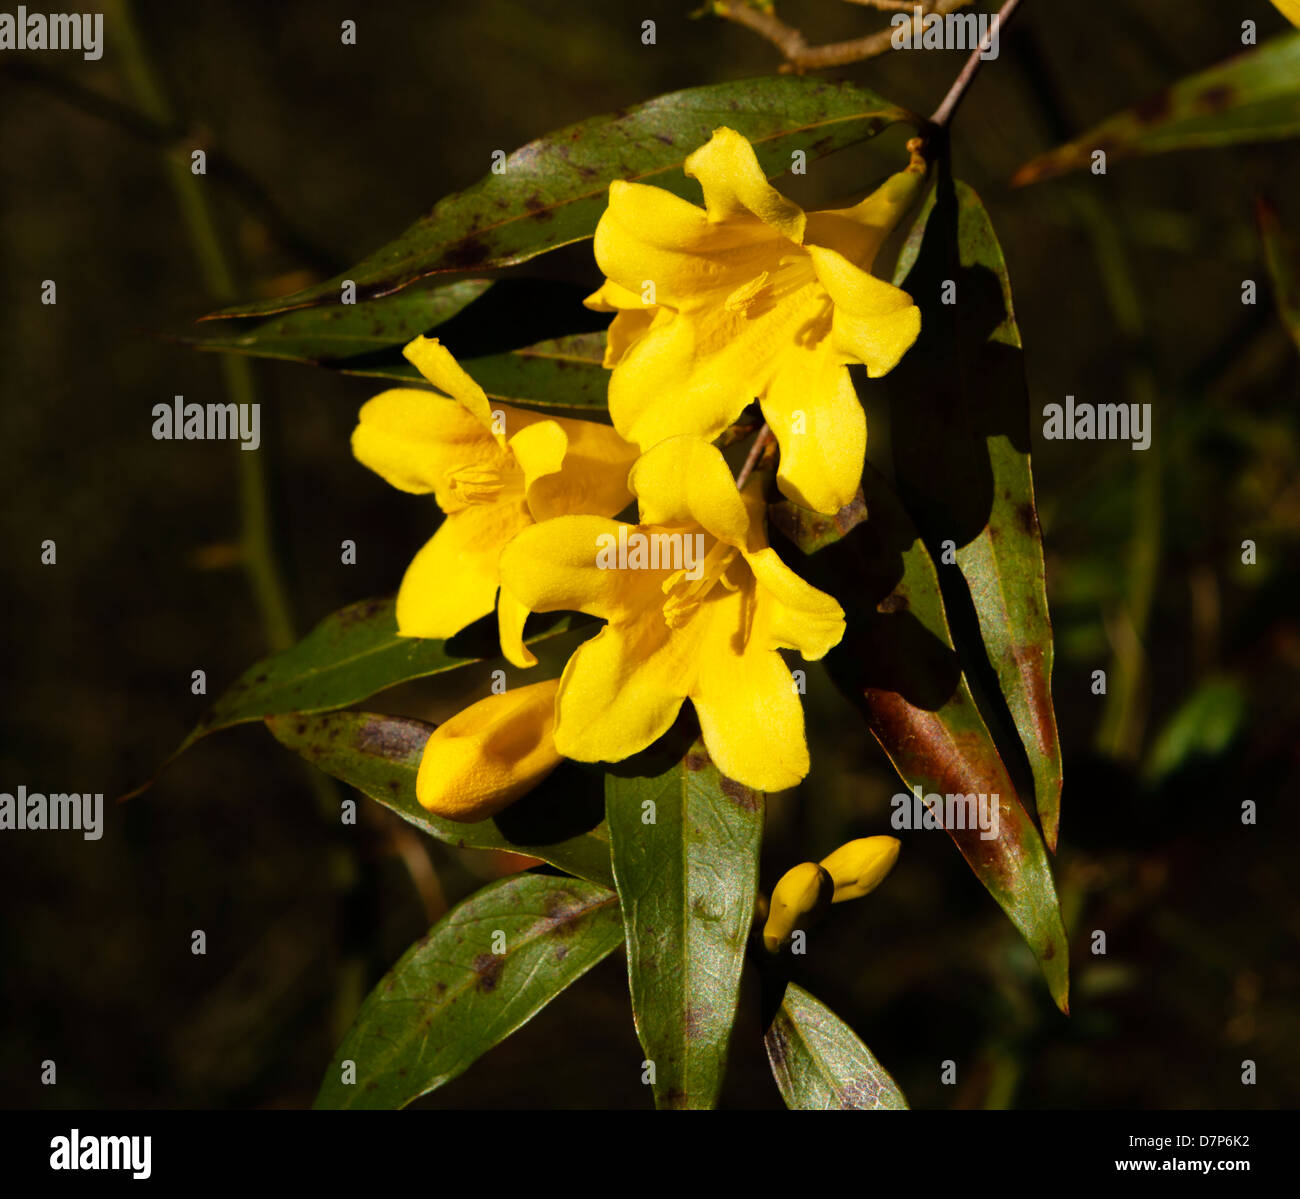 Flower cluster in foreground stock photos flower cluster in a vine of carolina yellow jasmine gelsemium sempervirens in the afternoon sunlight this izmirmasajfo